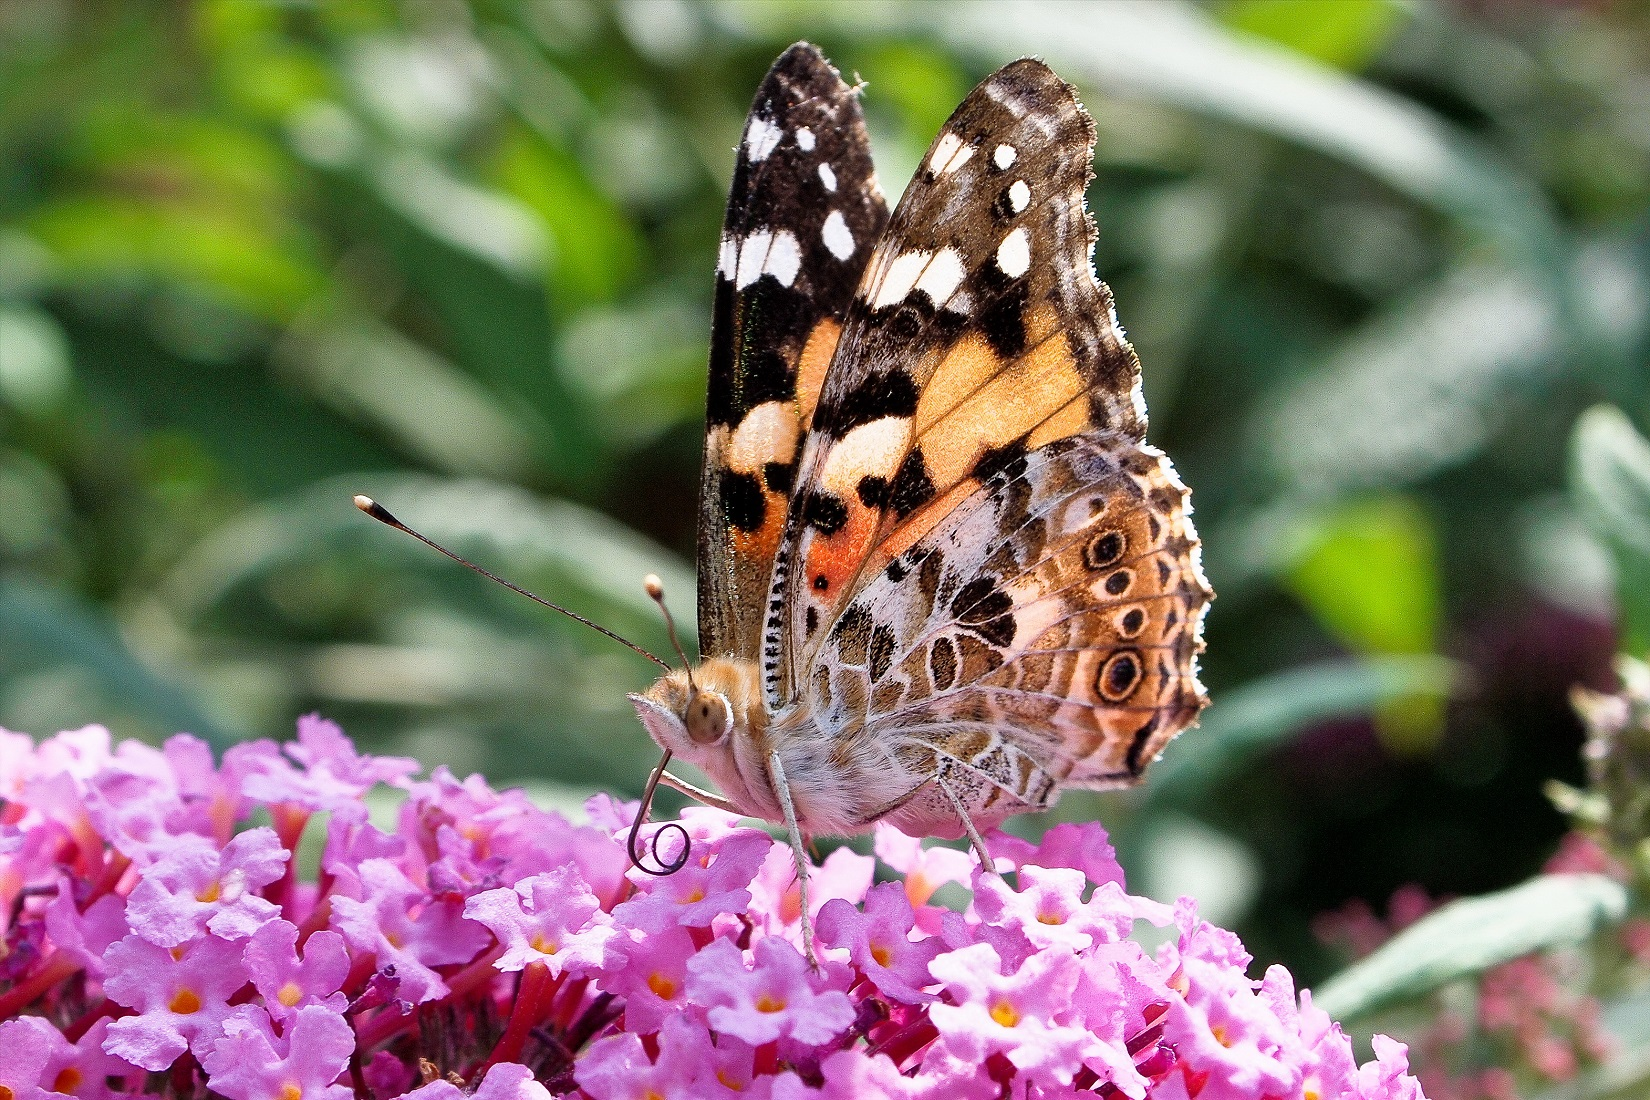 County Blooming With Painted Lady Butterflies